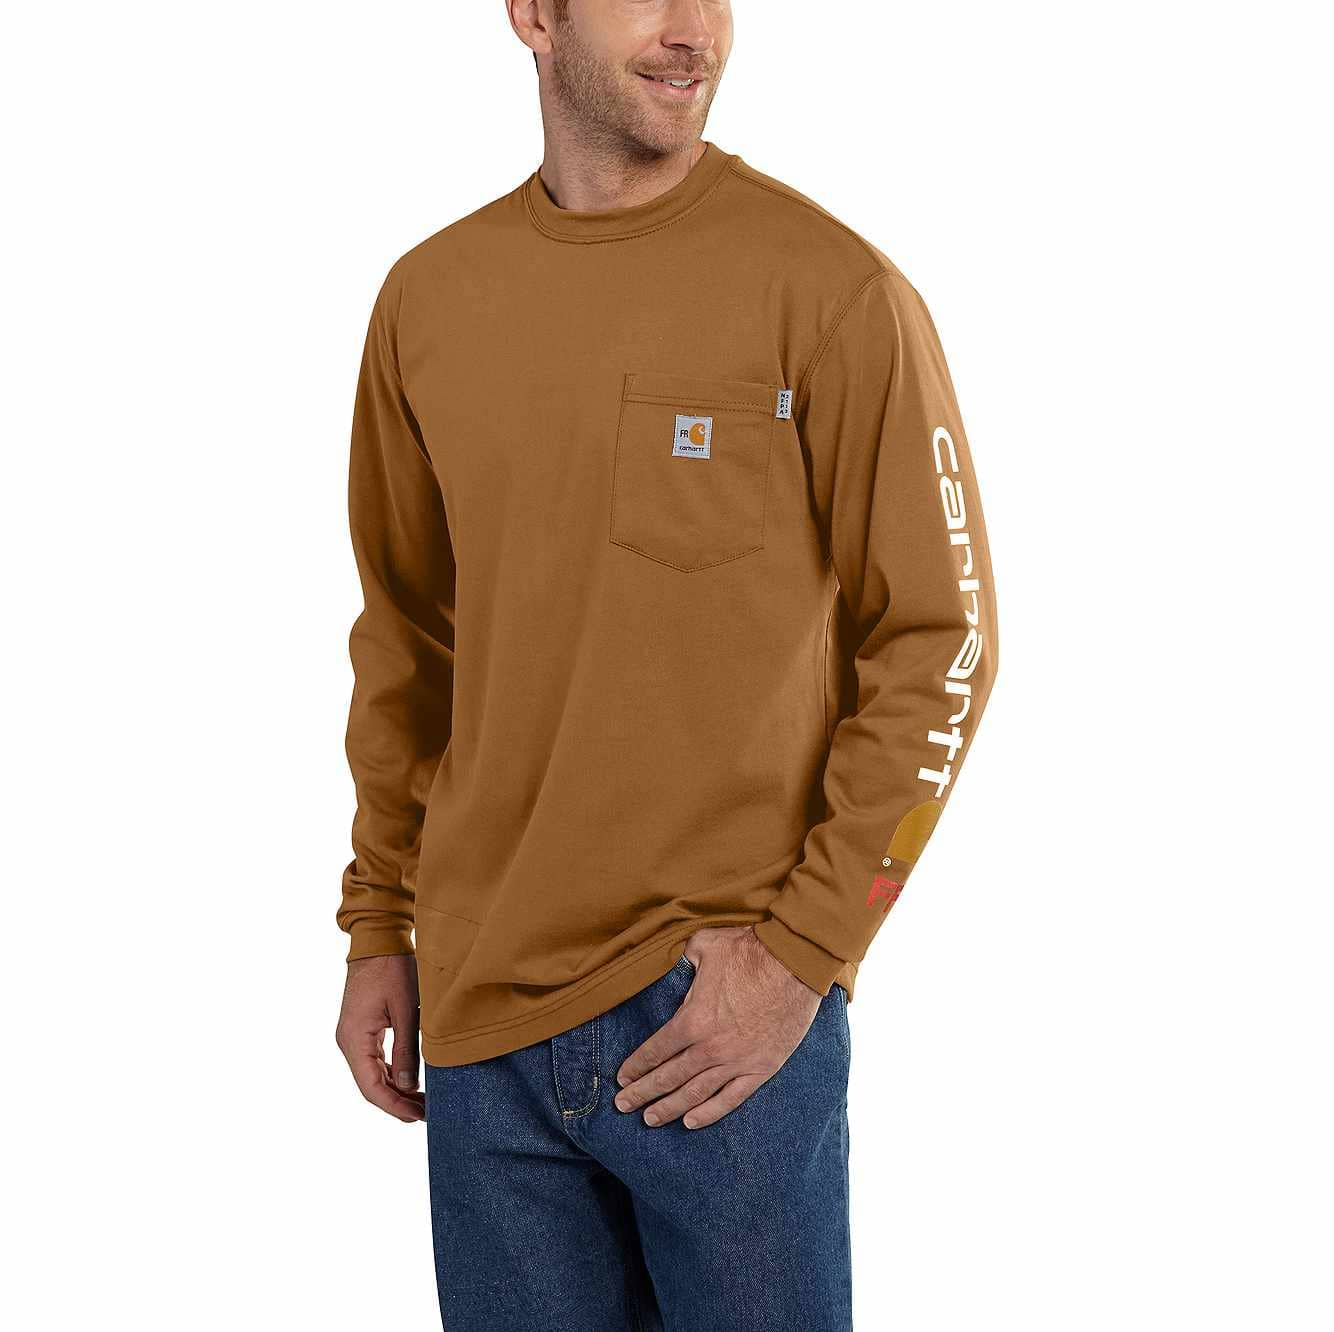 Picture of Flame-Resistant Carhartt Force® Graphic Long-Sleeve T-Shirt in Carhartt Brown